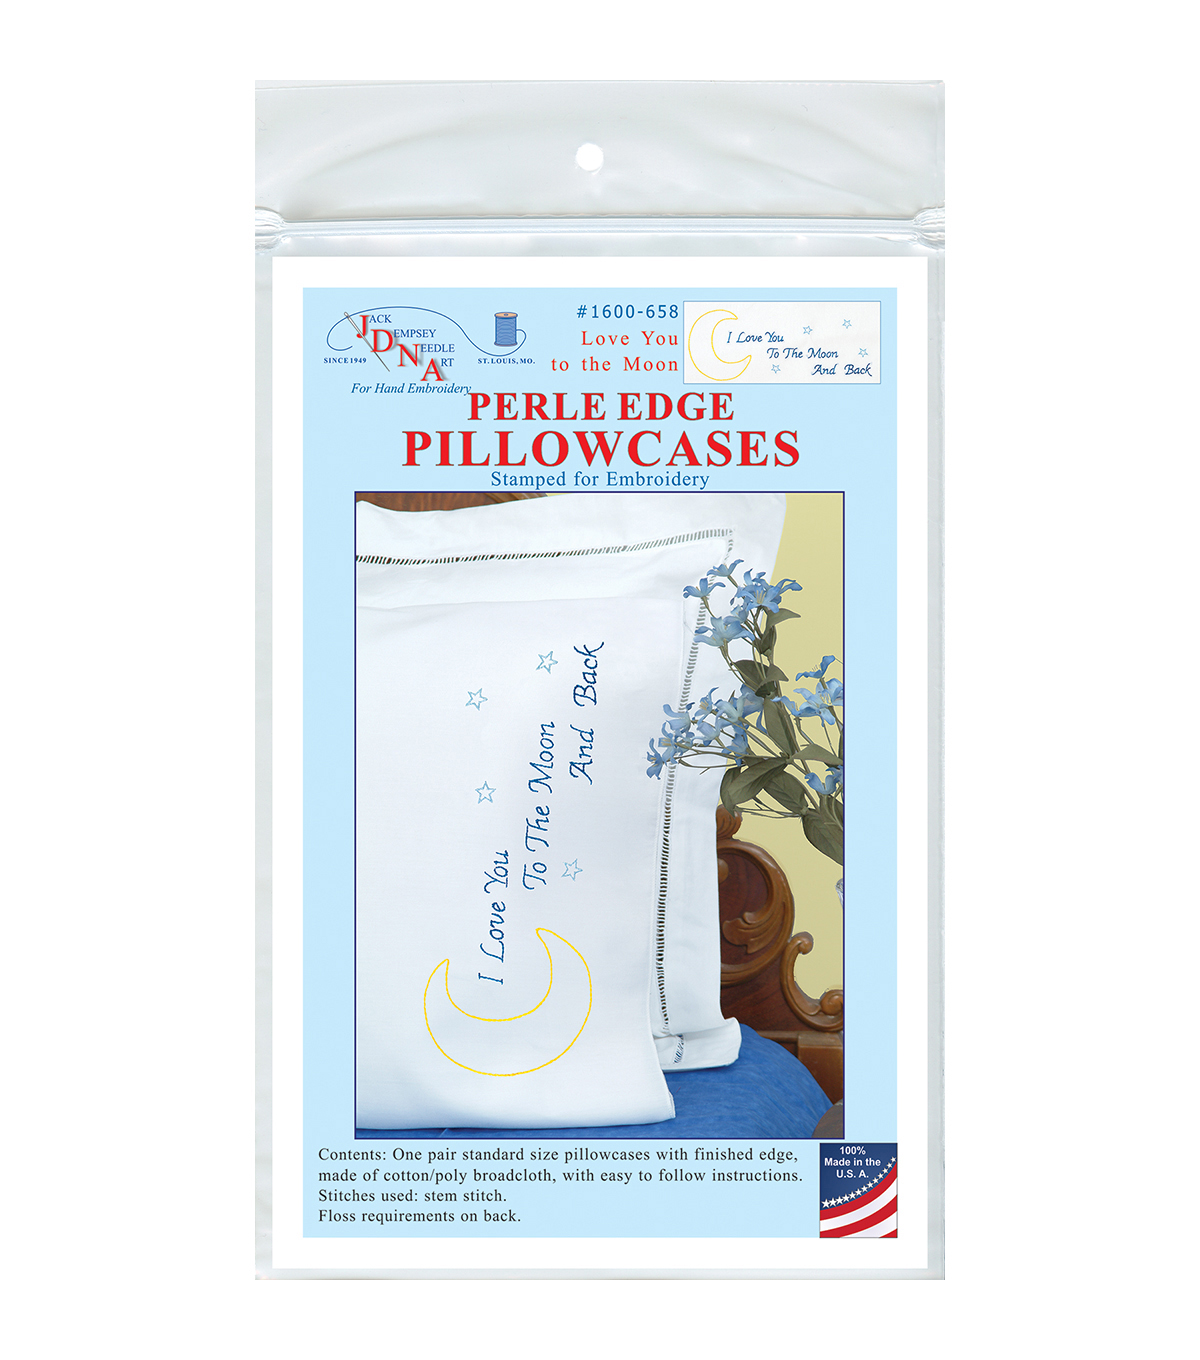 Jack Dempsey Stamped Pillowcases With Perle Edge-Love You To The Moon